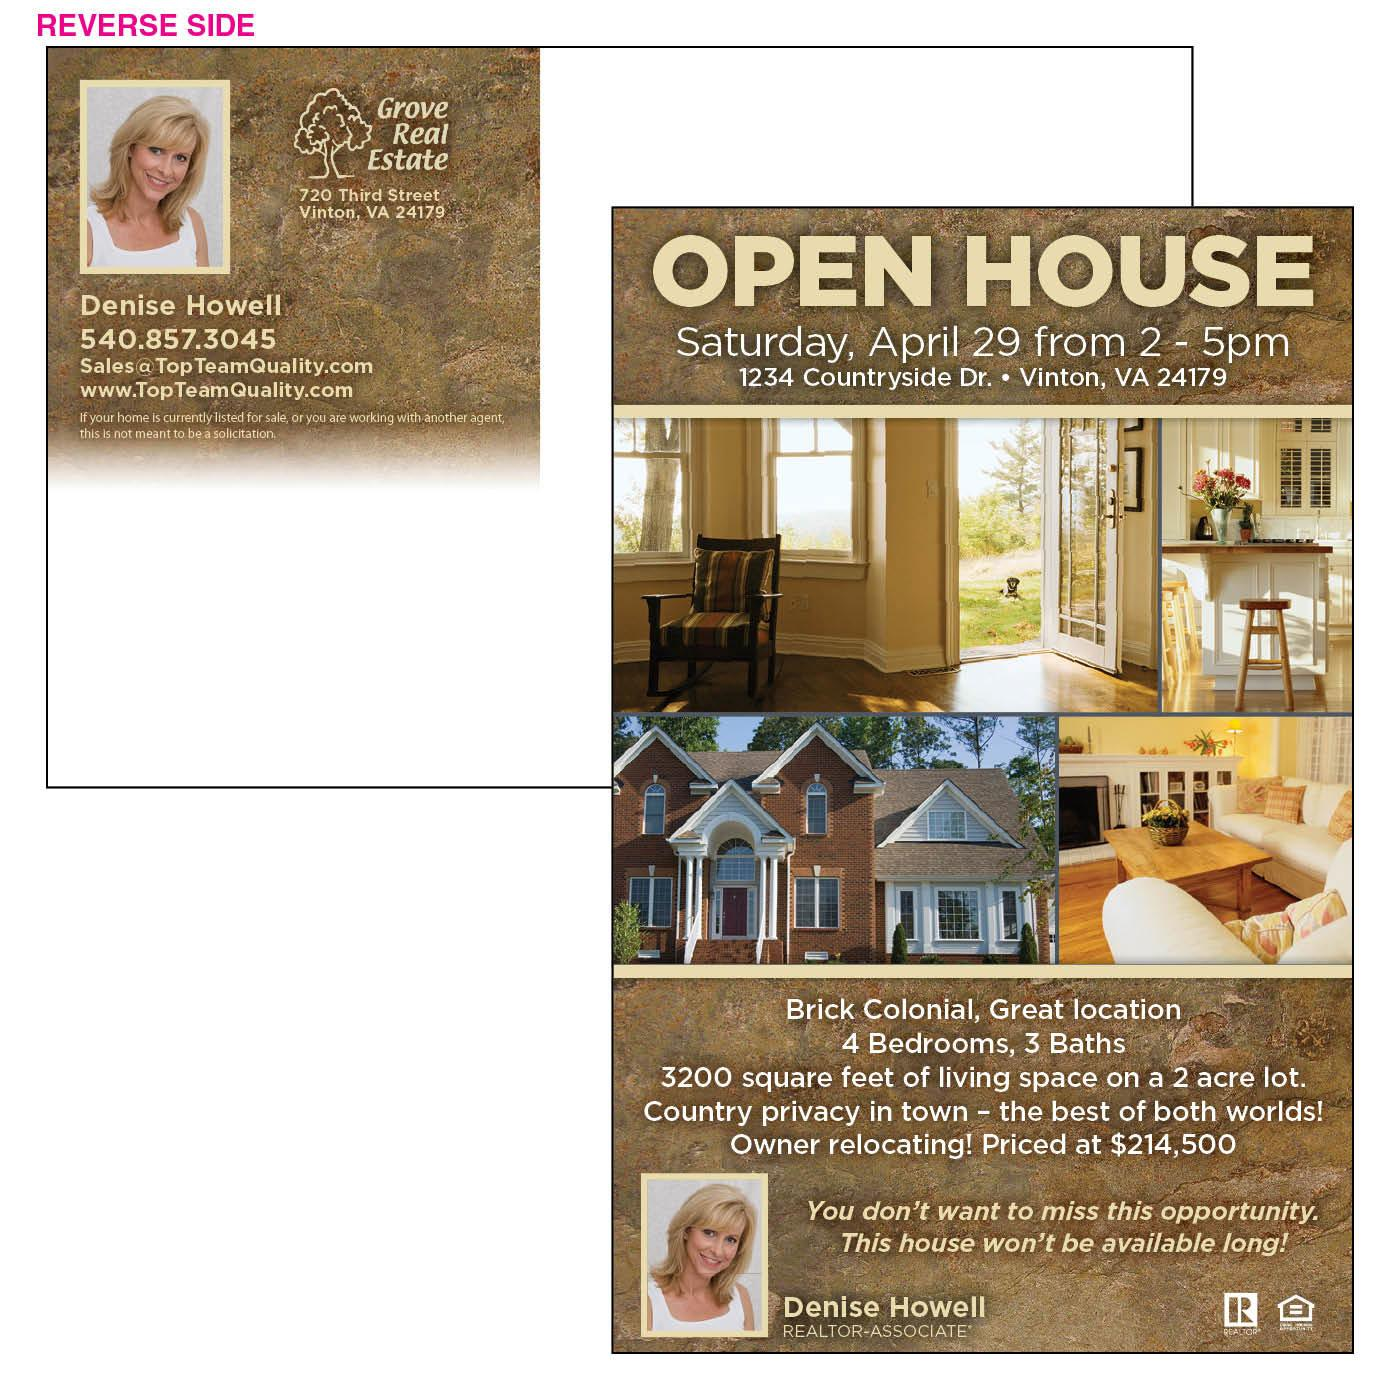 Marketing postcard for open house